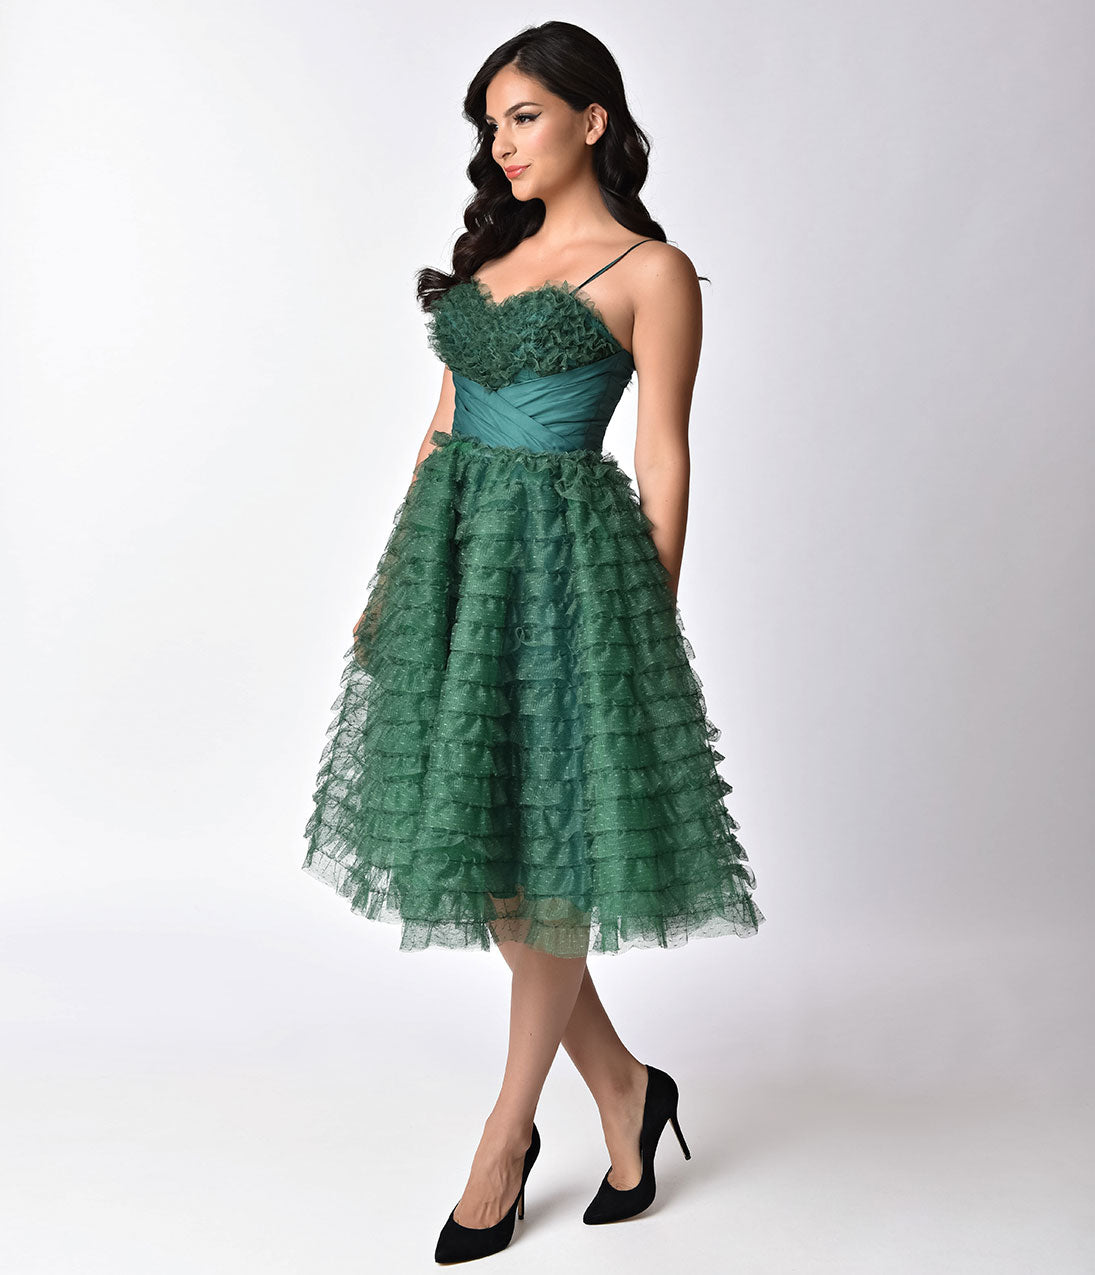 Vintage Christmas Gift Ideas for Women Unique Vintage 1950S Emerald Green Ruffled Tulle Sweetheart Cupcake Swing Dress $128.00 AT vintagedancer.com